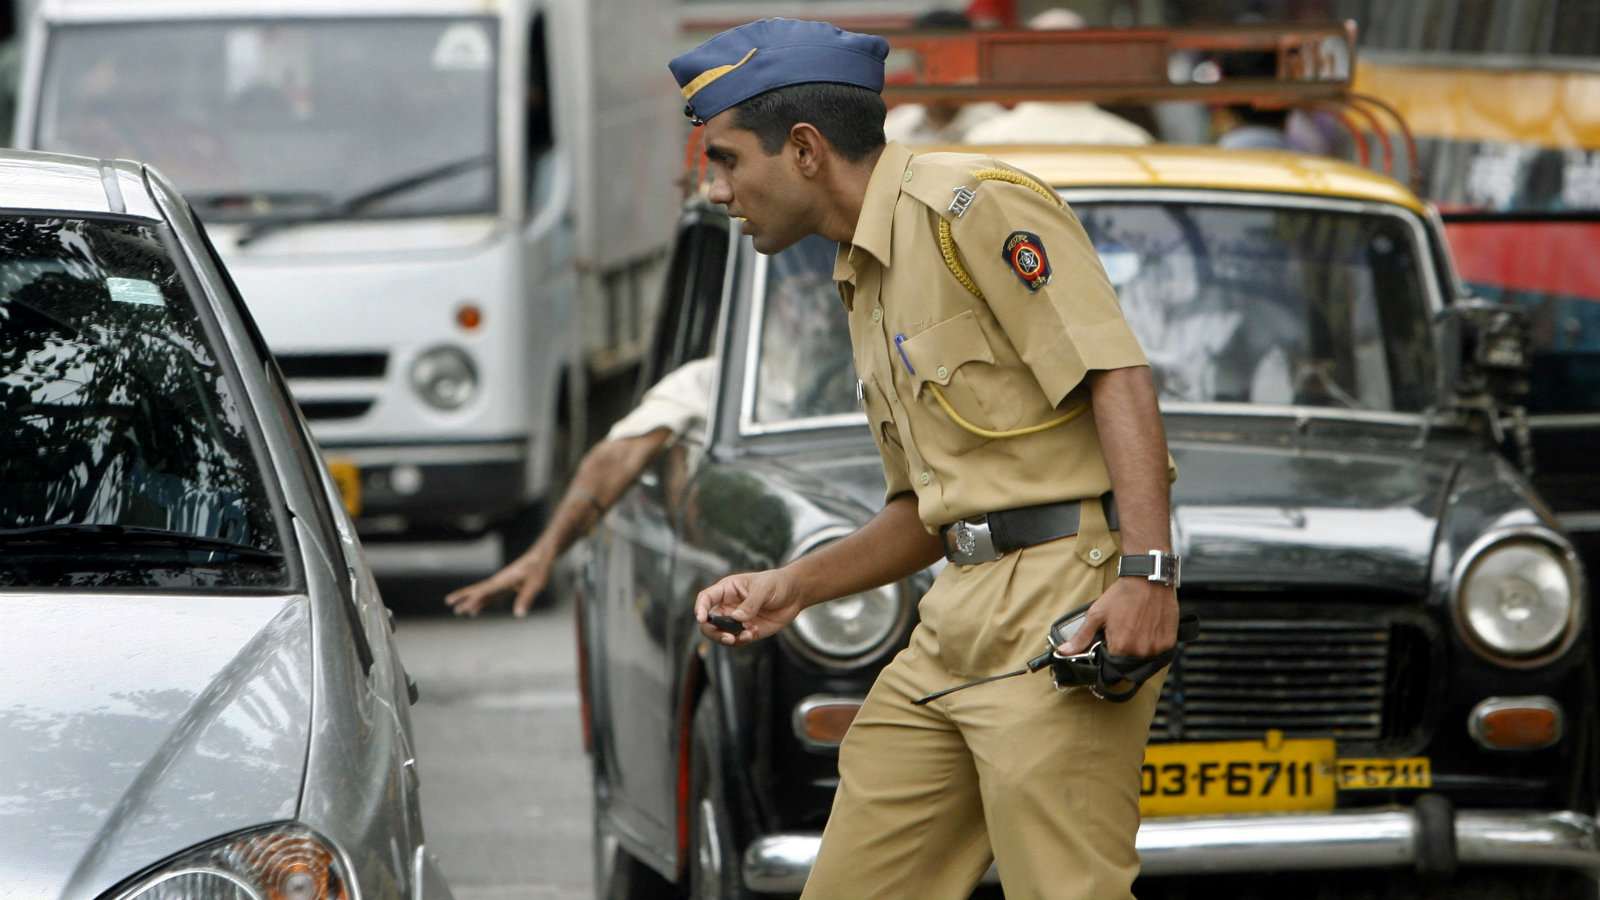 A policeman controls traffic on a busy road in Mumbai July 30, 2008. Security has been beefed up at important buildings across Mumbai after a series of bomb blasts in India's western and southern cities of Ahmedabad and Bangalore respectively last week, police said.